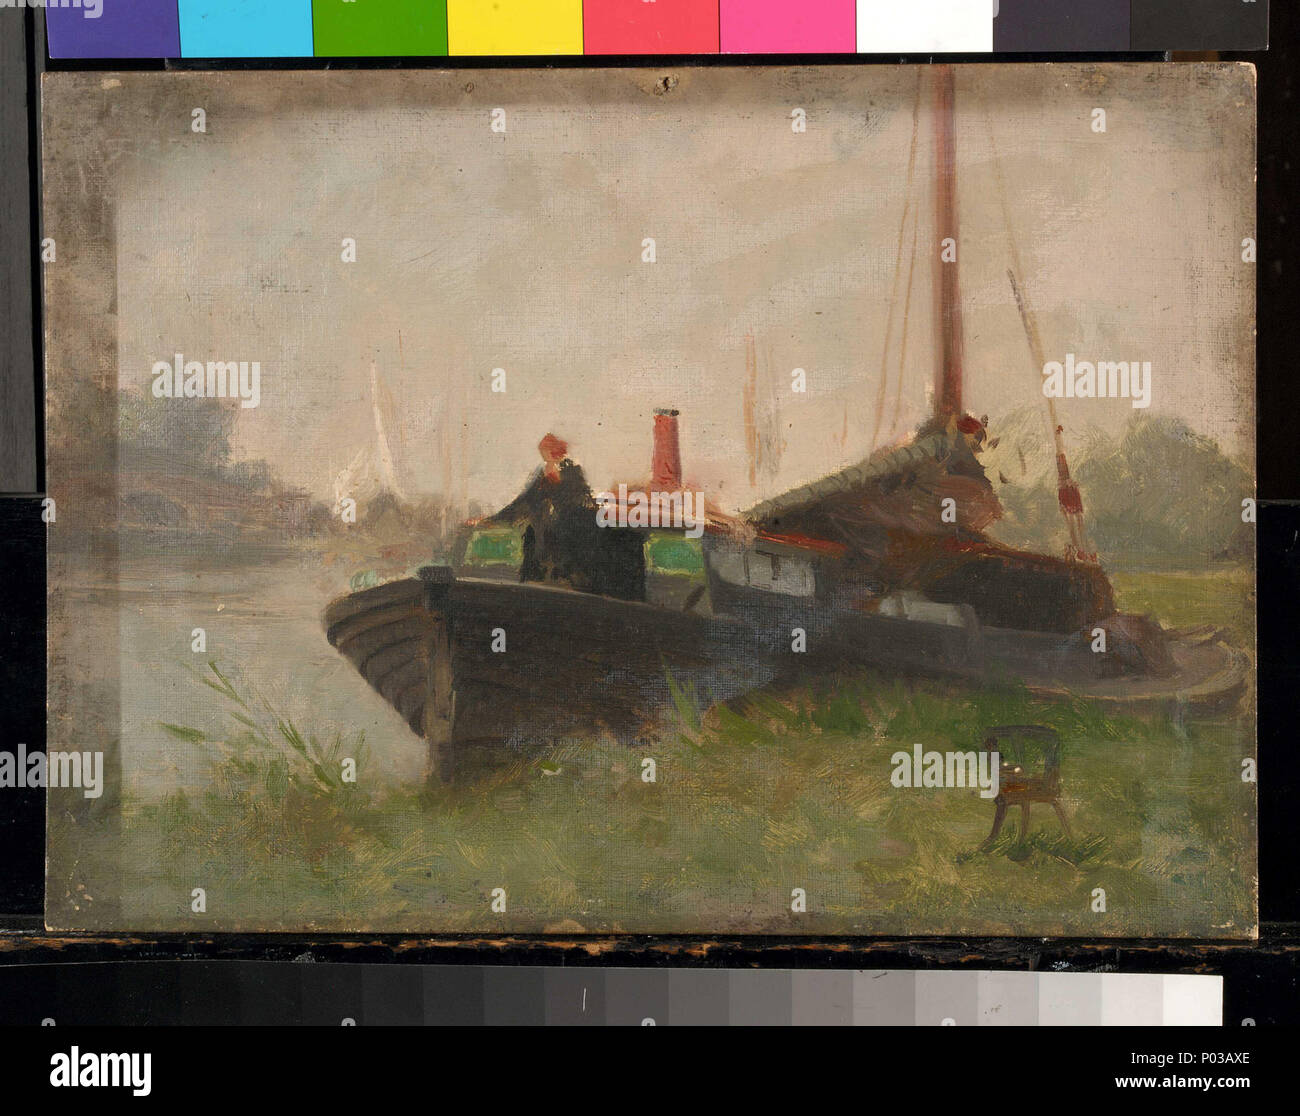 .  English: A barge Oil painting by John Fraser, entitled 'A Barge'. A barge  . Late 19th century - mid 20th century. John Fraser 23 A barge RMG BHC0630 - Stock Image